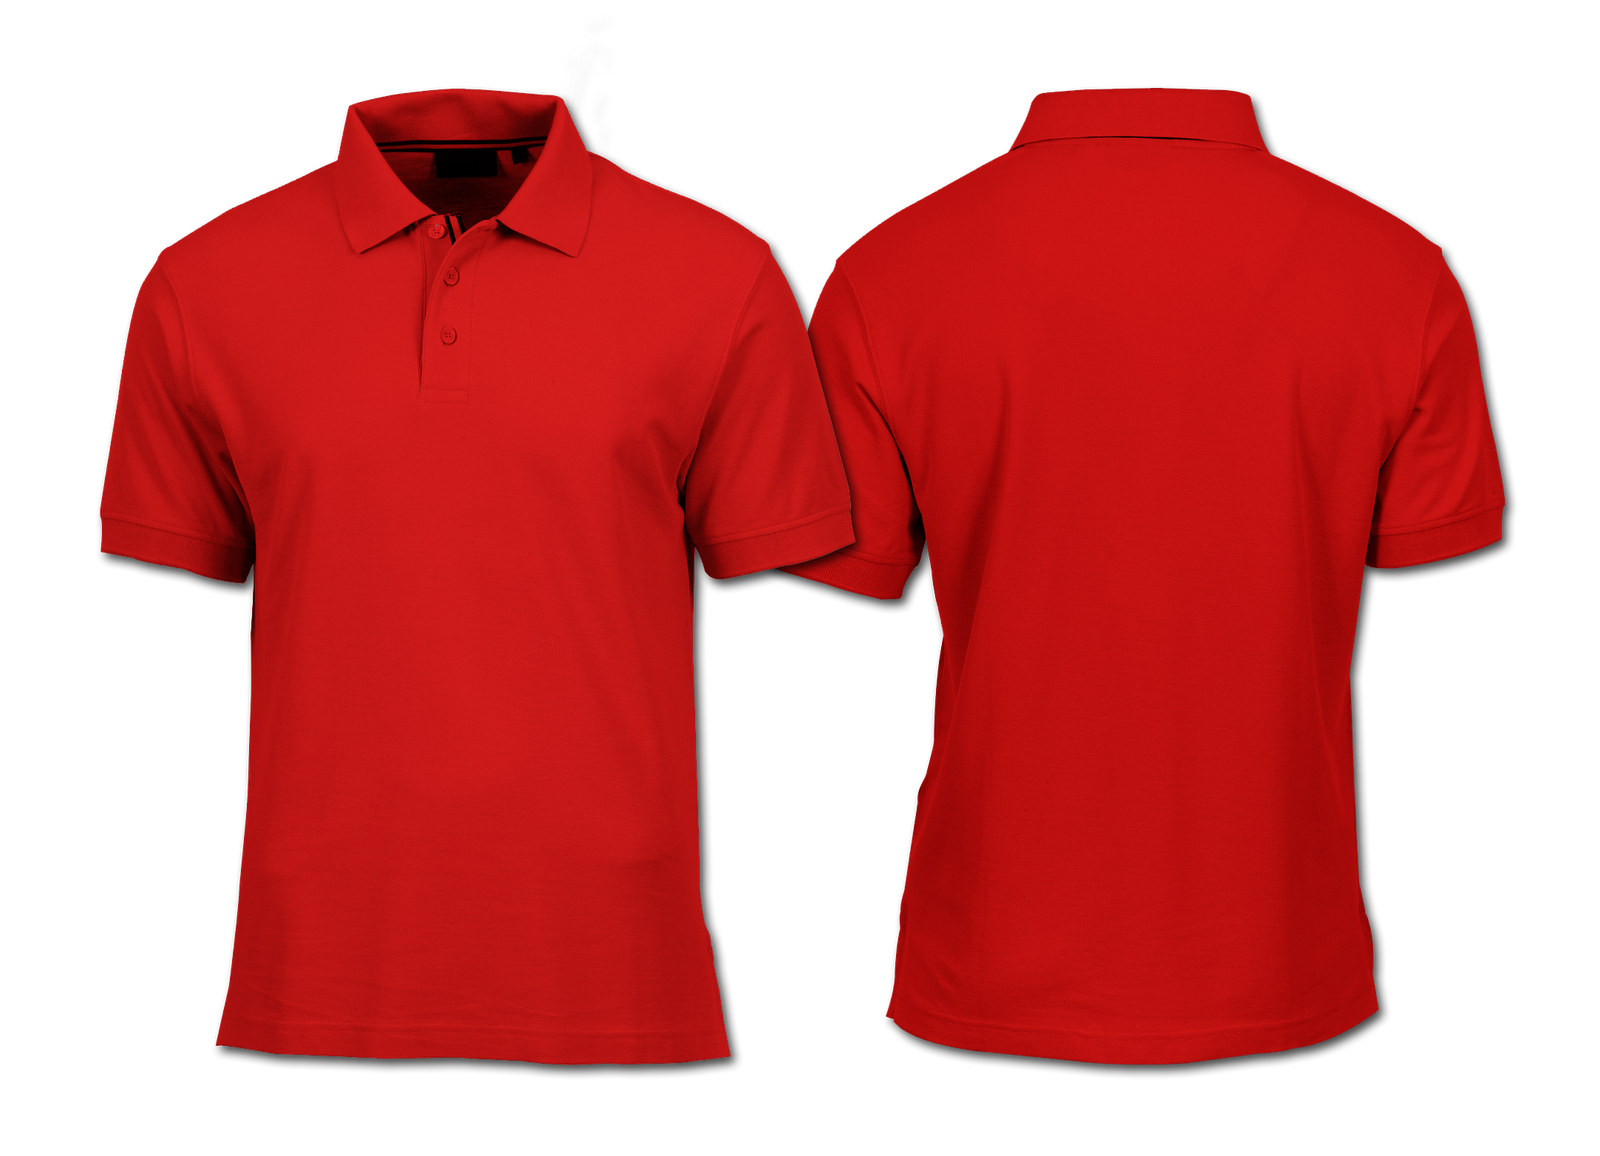 polo shirt mockup will help you preview how your apparel design will look like printed on a shirt. Gembel Keren Mock Up Polo Shirt Polo Shirt Design Polo Design Shirts